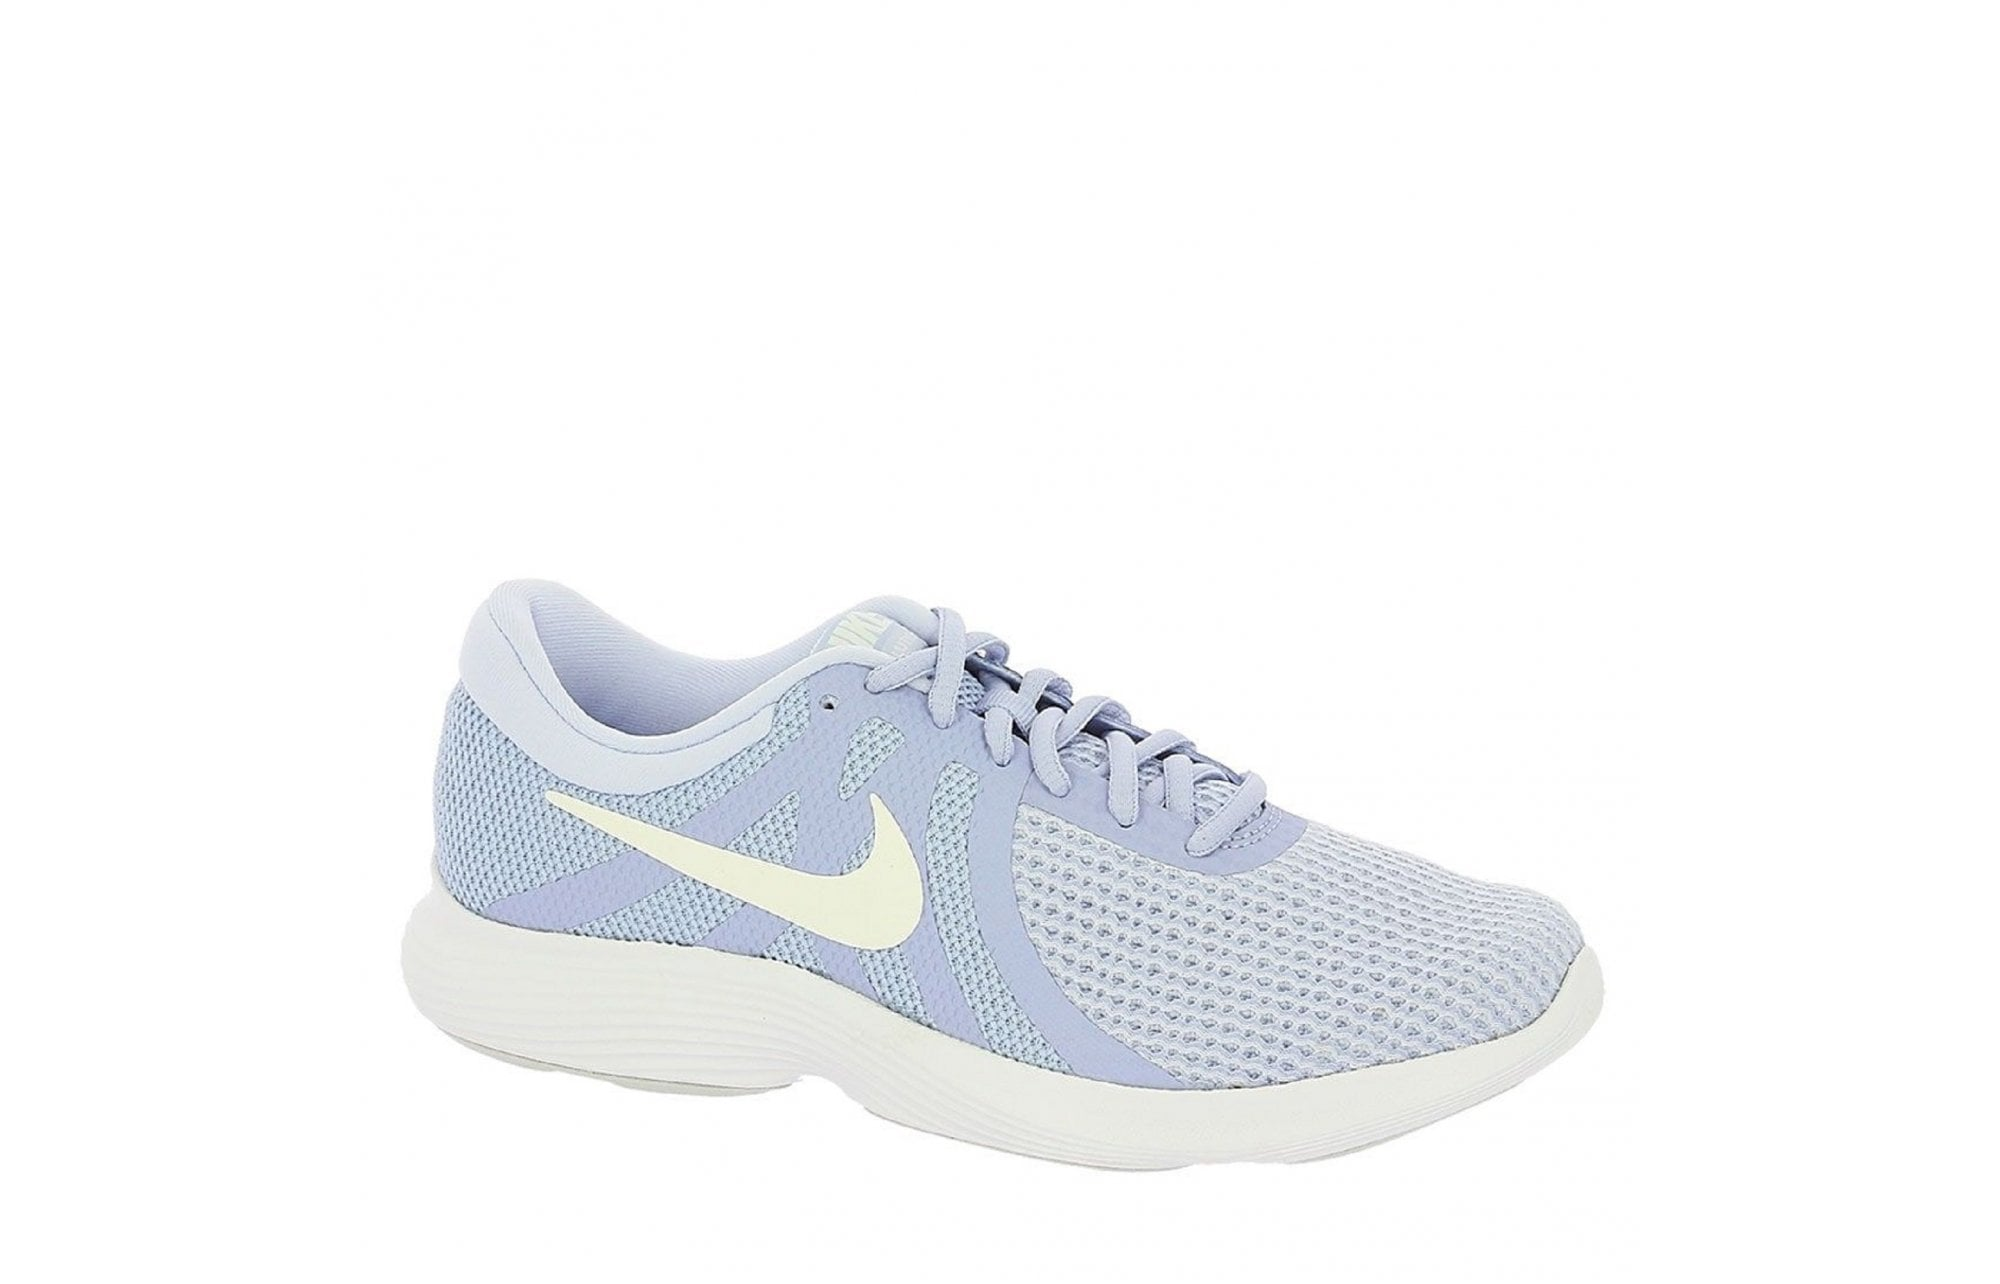 Refinería Aplicando agrio  NIKE Nike Revolution 4 EU Youth Trainers - Blue - Children from Johnsons  Shoes UK